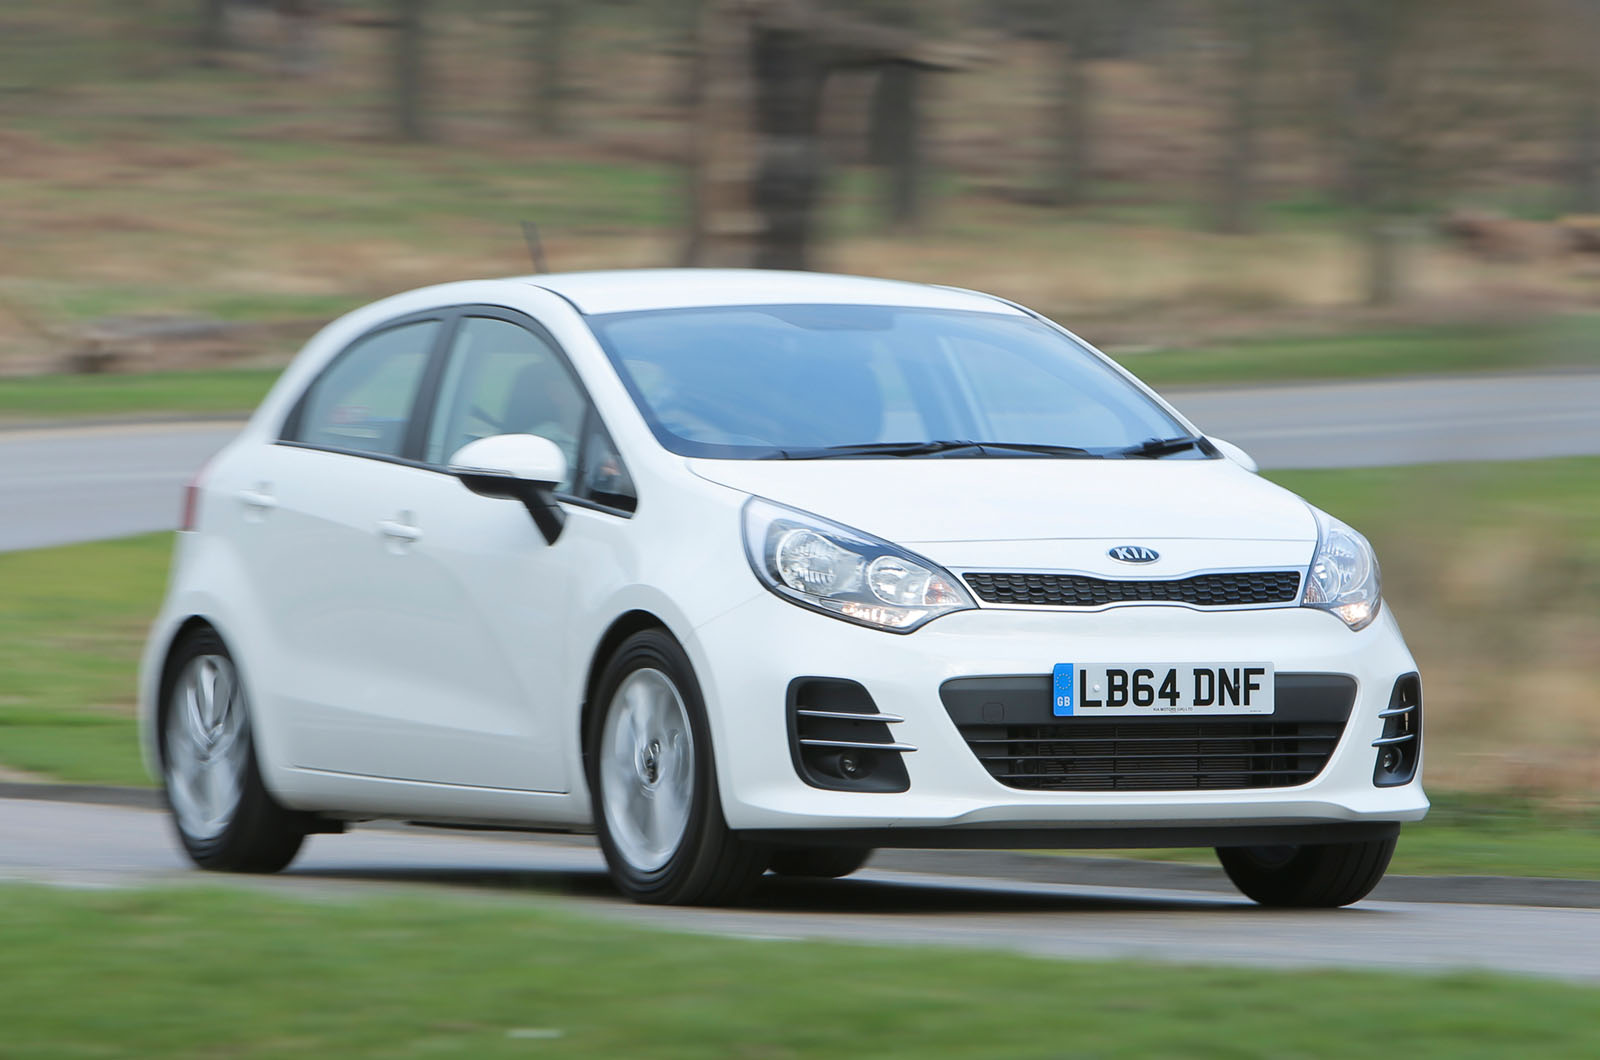 2015 Kia Rio 2 14 Review Autocar 0 Engine Diagram